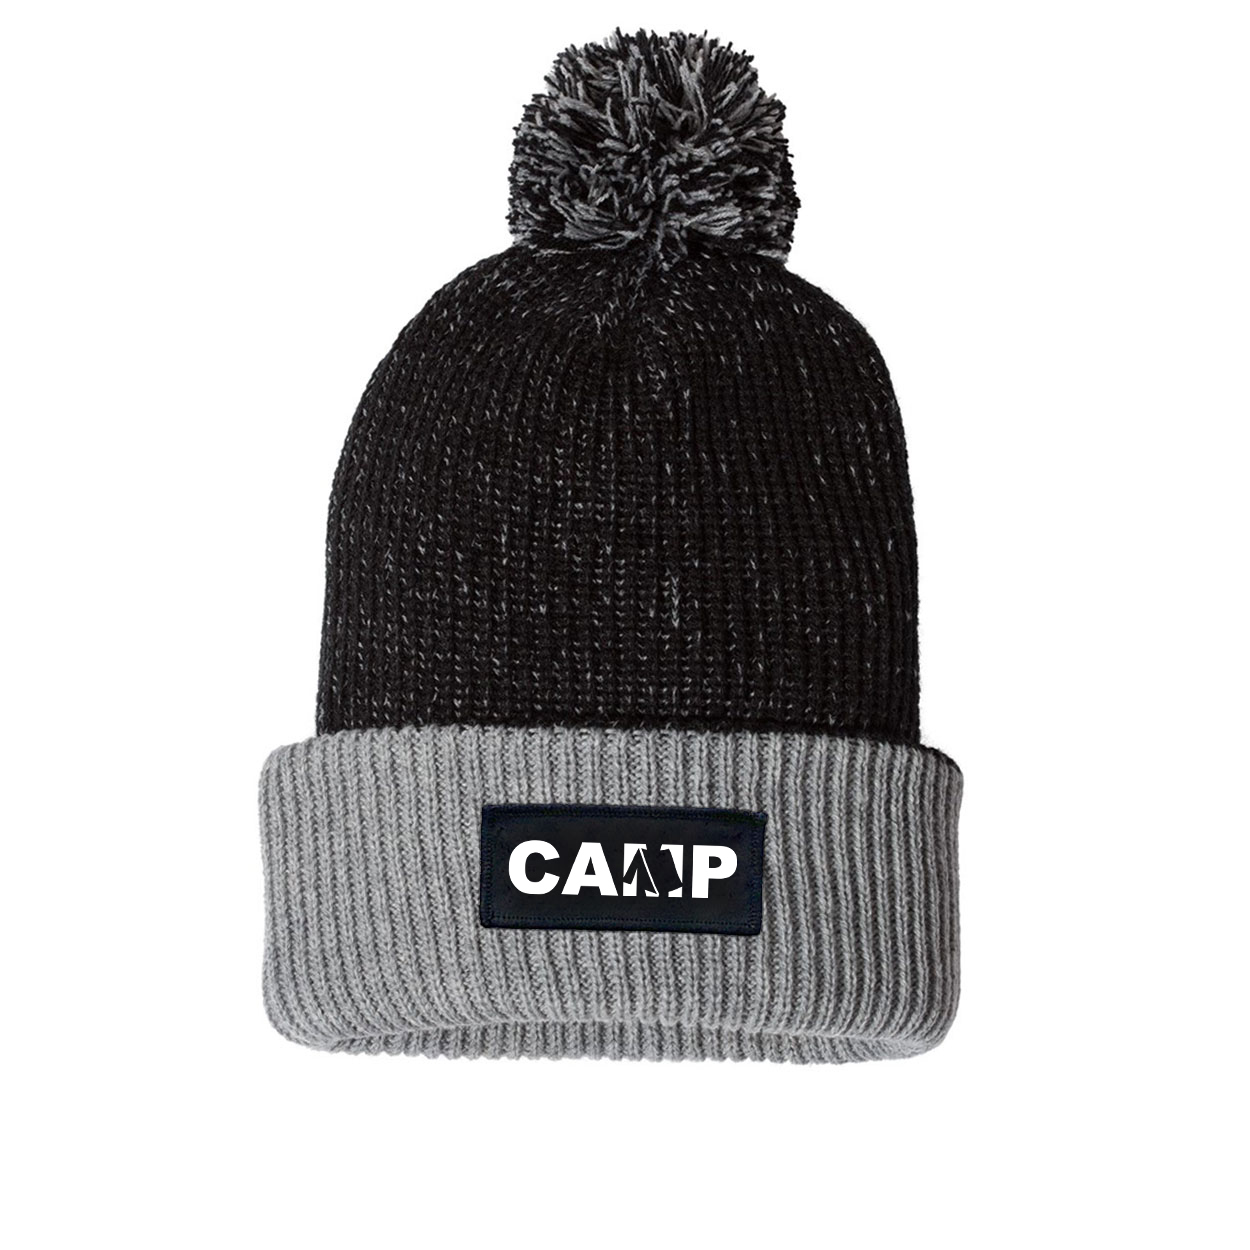 Camp Tent Logo Night Out Woven Patch Roll Up Pom Knit Beanie Black/Gray (White Logo)